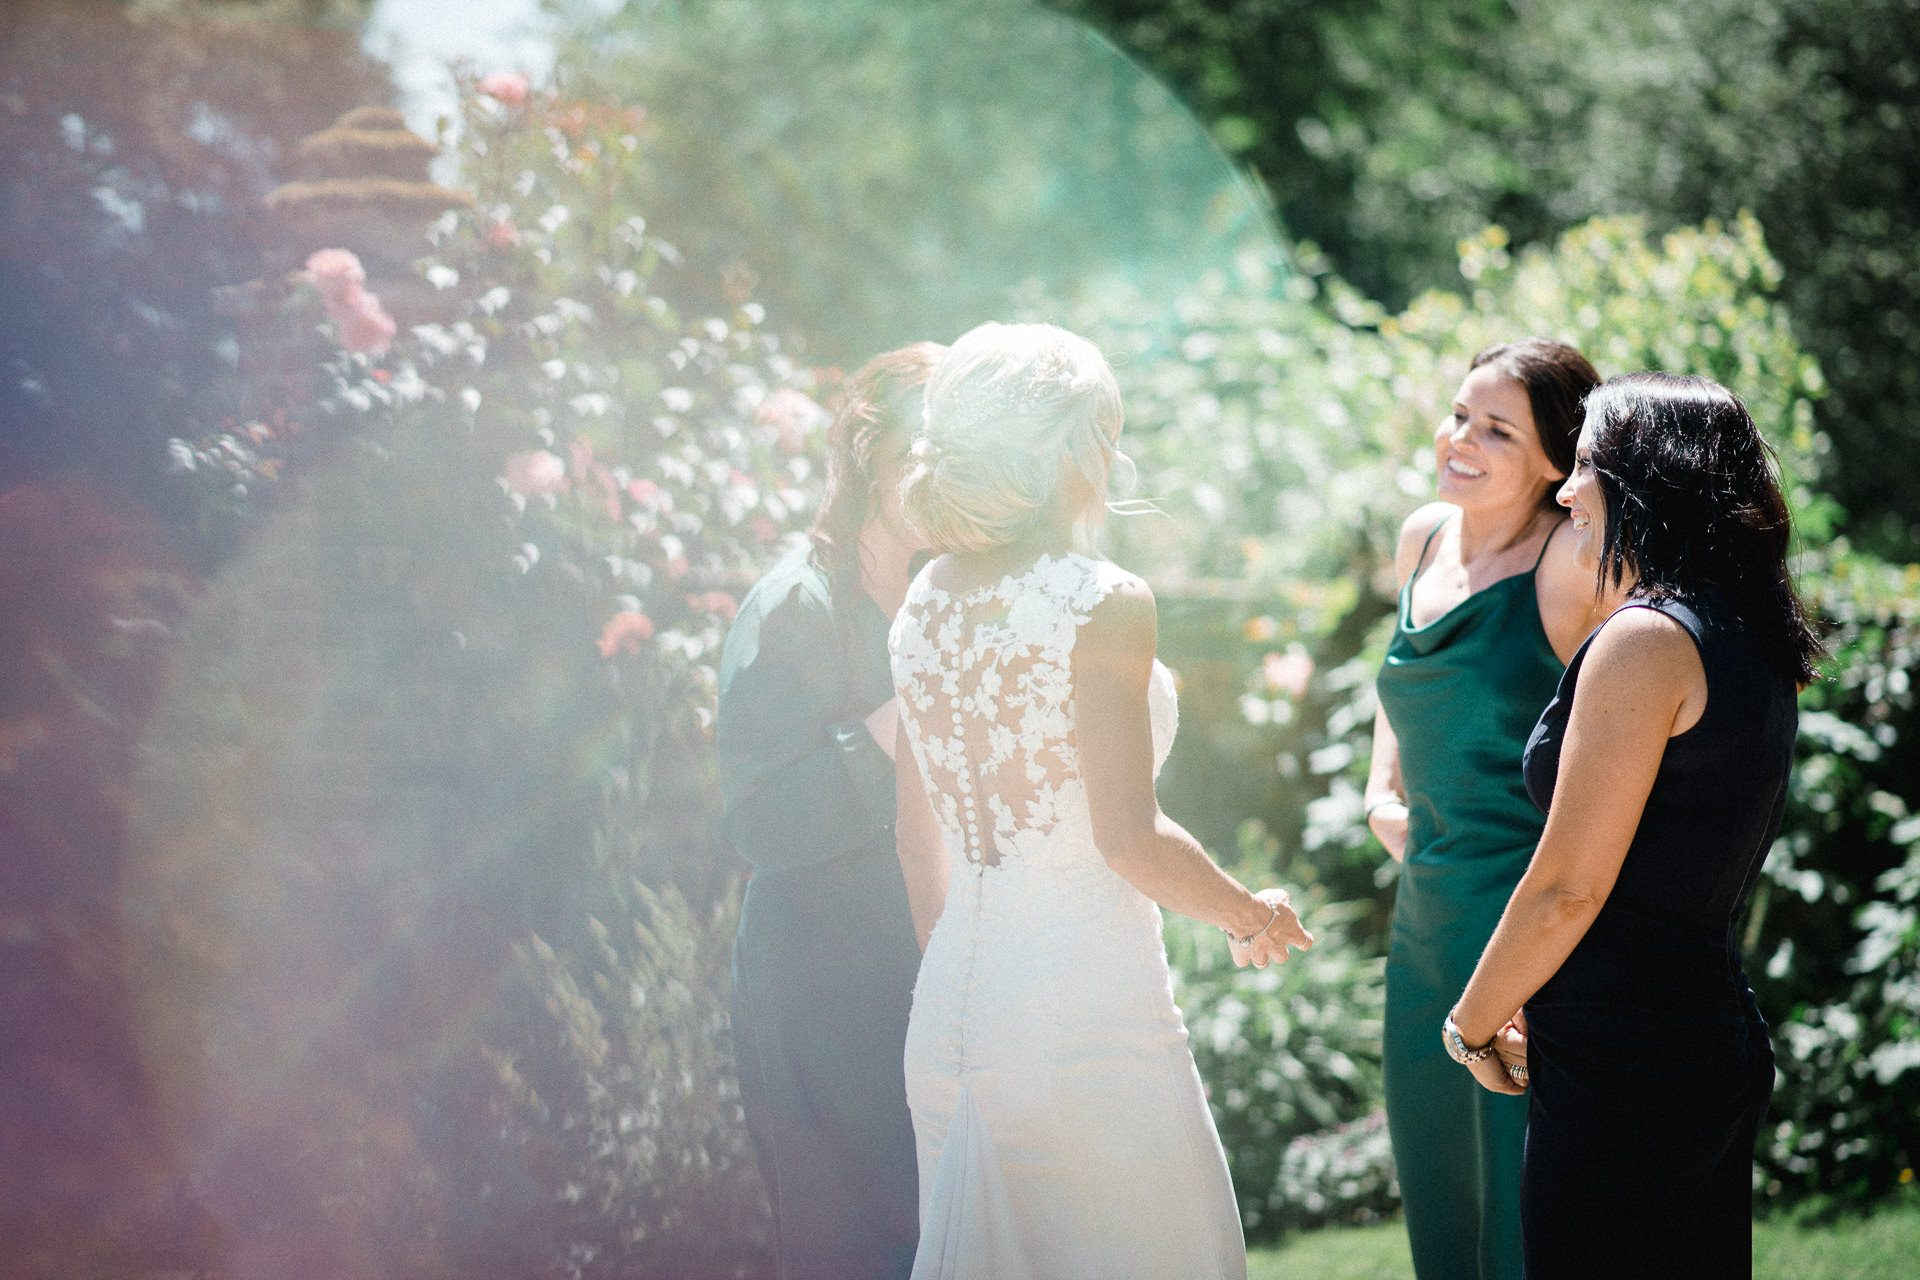 0090-DEVON-SOMERSET-WEDDING-PHOTOGRAPHER-0397-BEST-OF-2019-LOUISE-MAY-DEVON-SOMERSET-WEDDING-PHOTOGRAPHY-LM1_8894